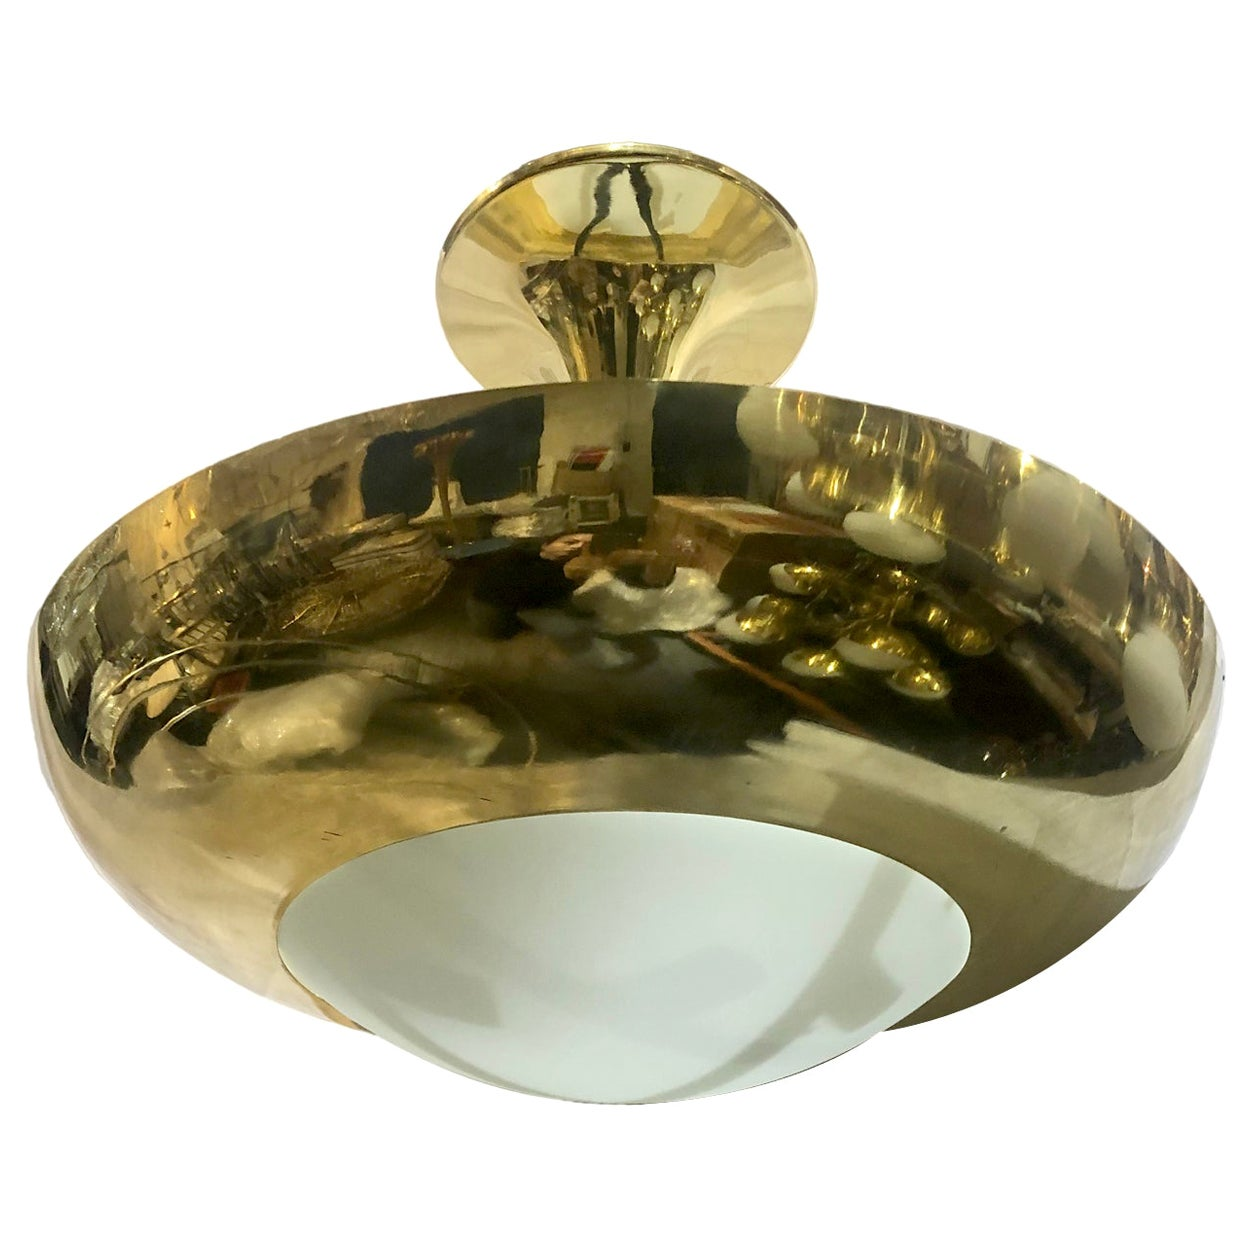 Set of Moderne Light Fixtures, Sold Individually